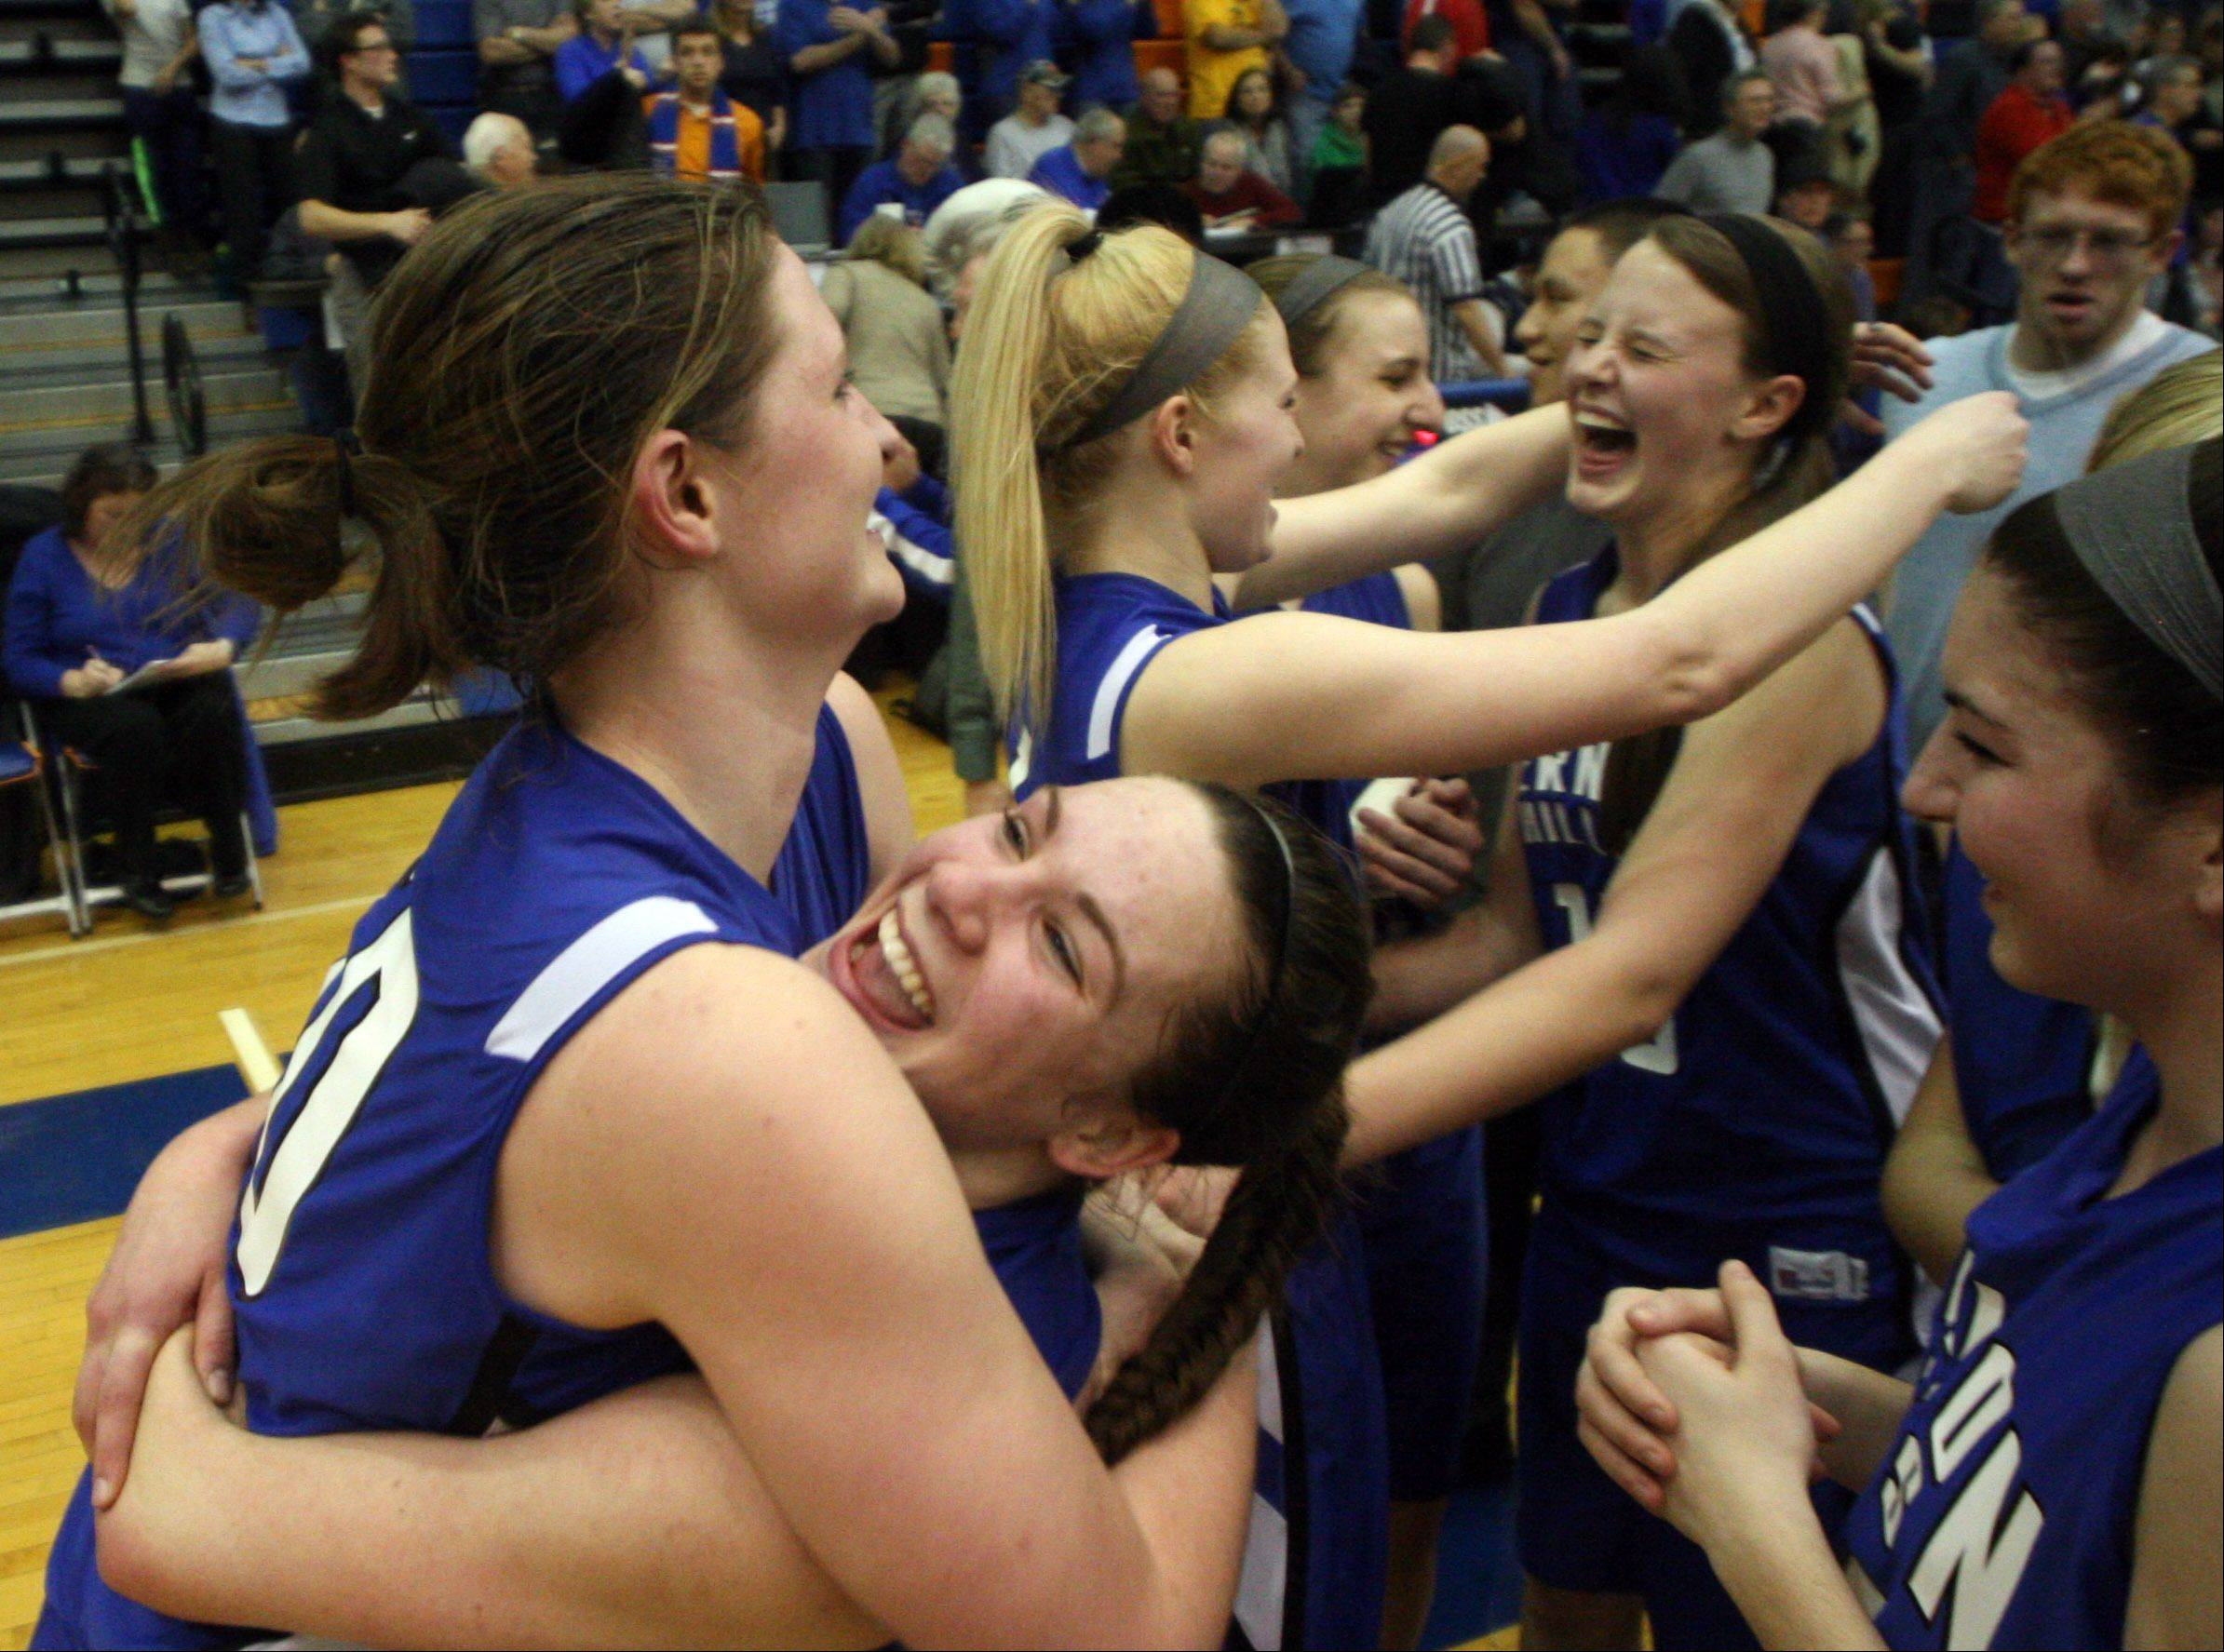 Vernon Hills players react after their 39-31 Class 3A supersectional victory over Burlington Central in Hoffman Estates Monday night.